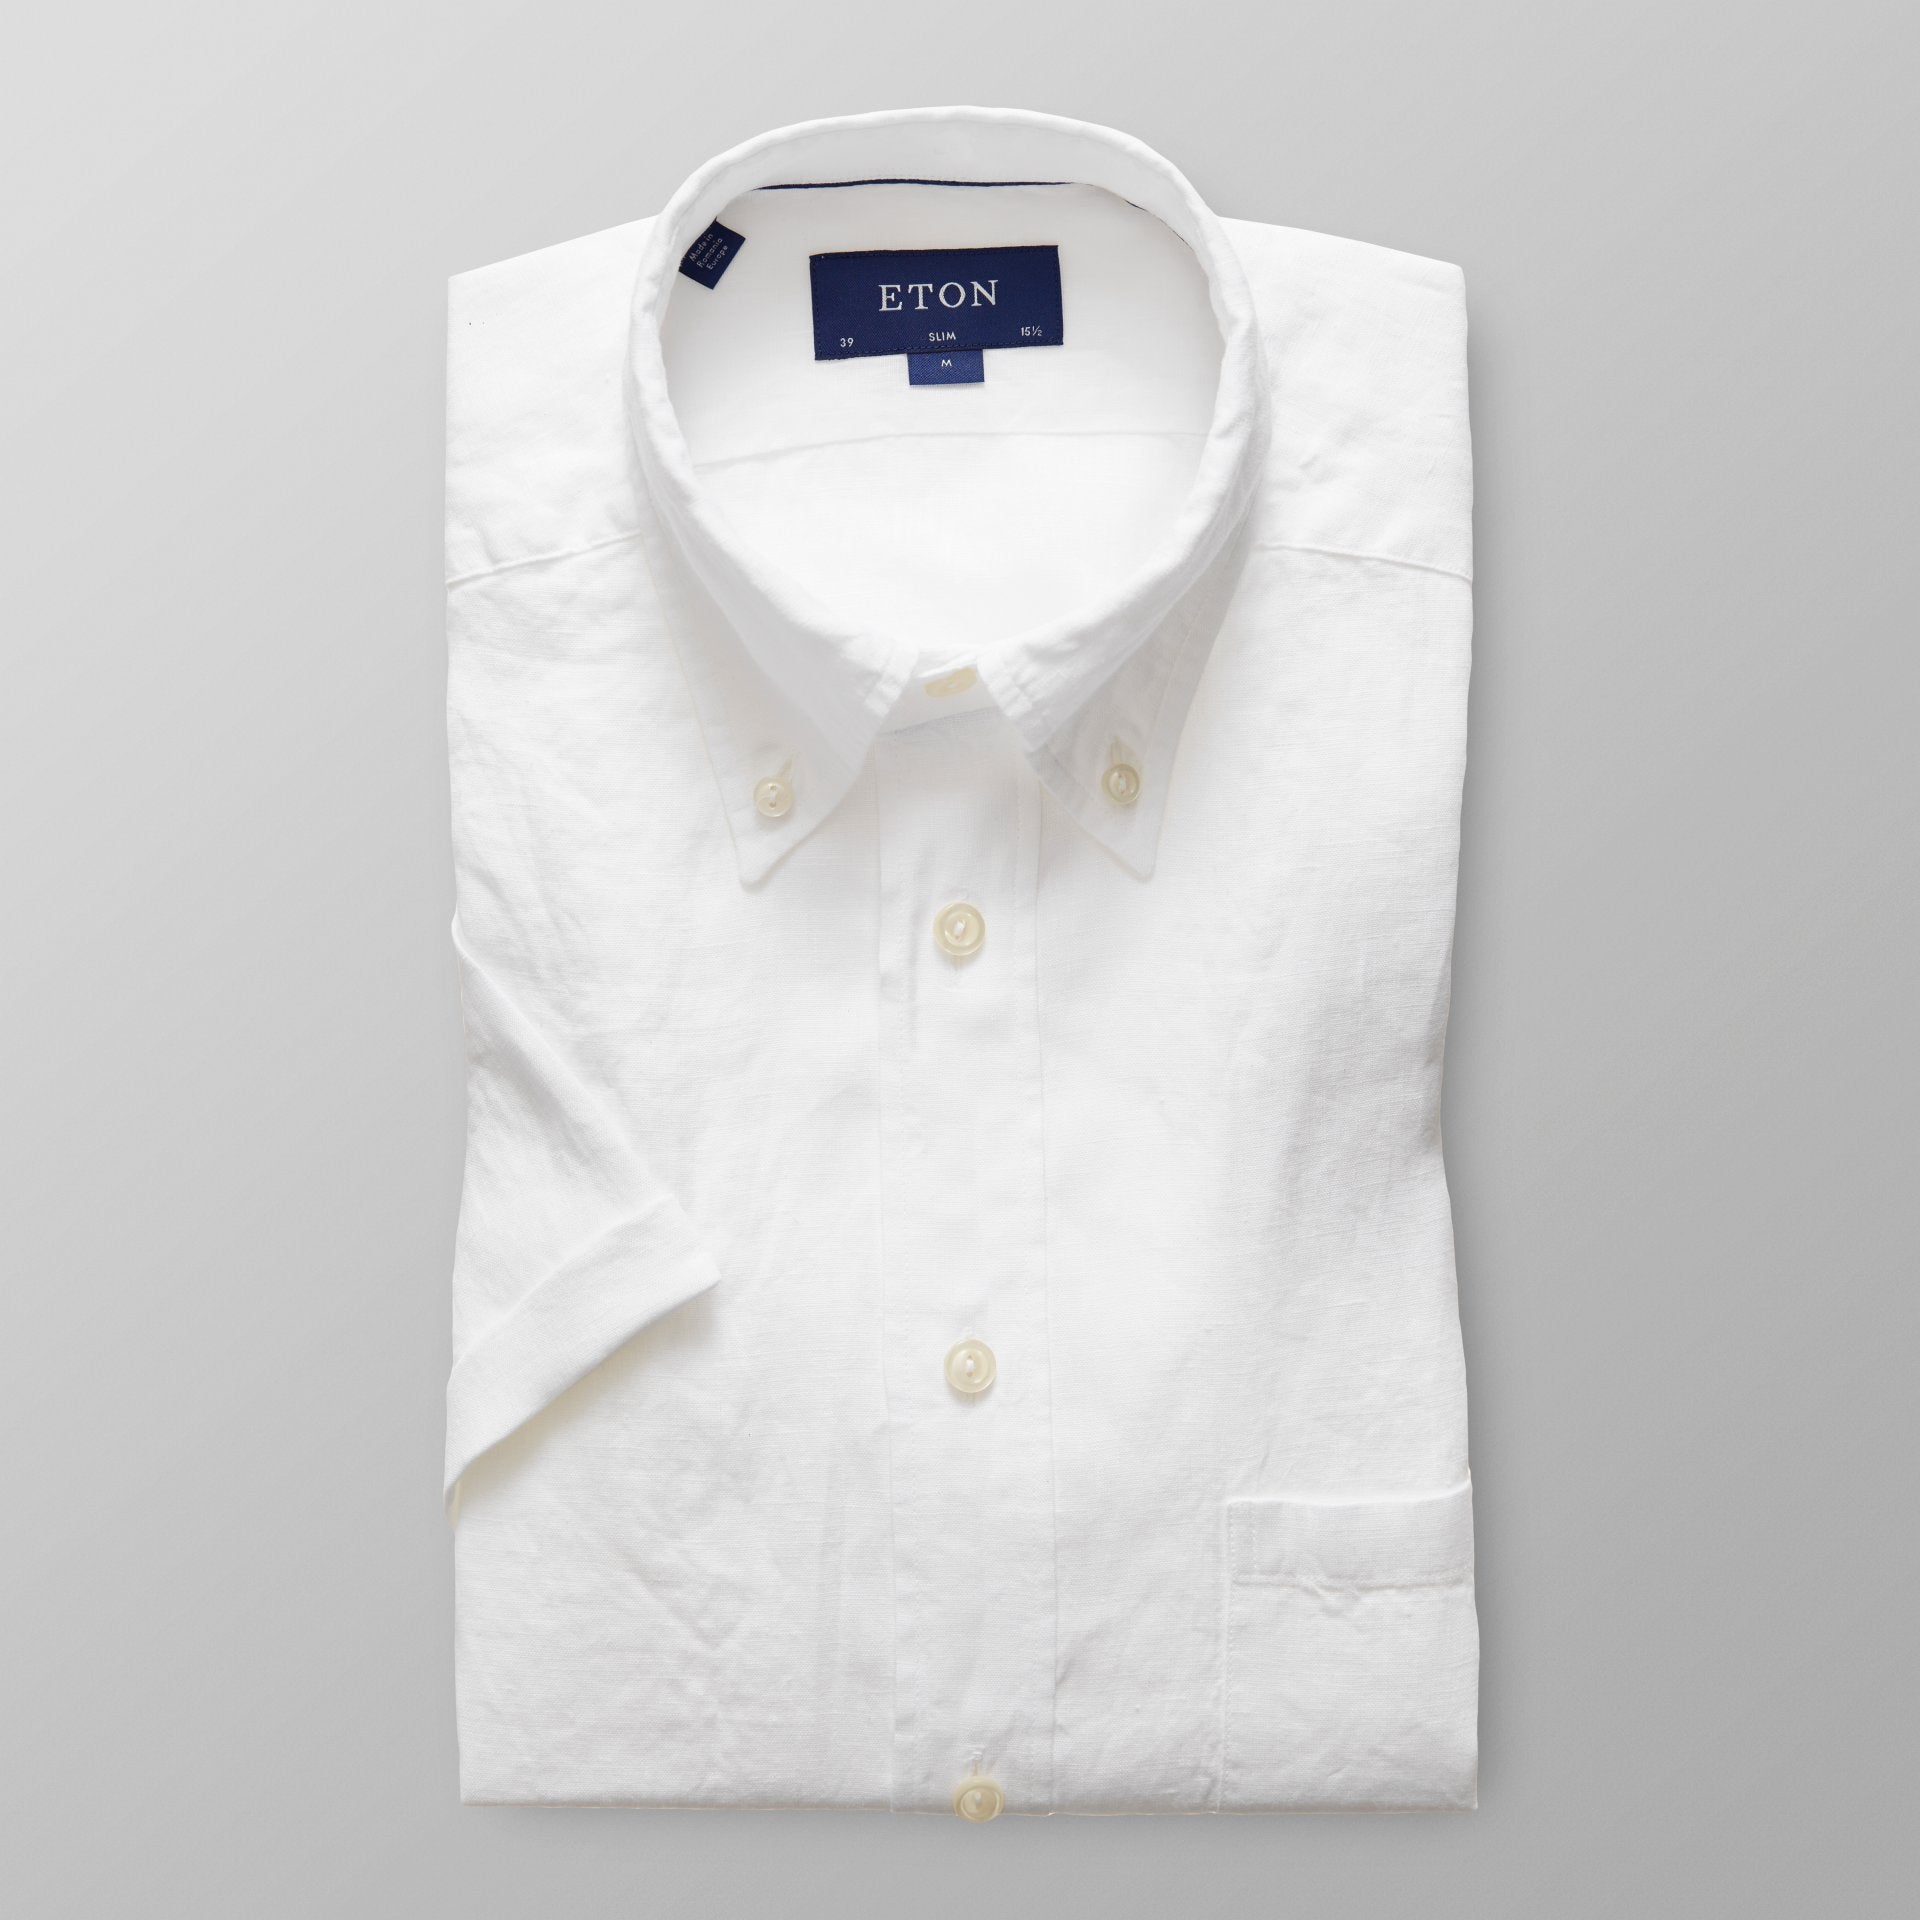 ETON - Slim Fit White Linen Short Sleeve Shirt 02525759300